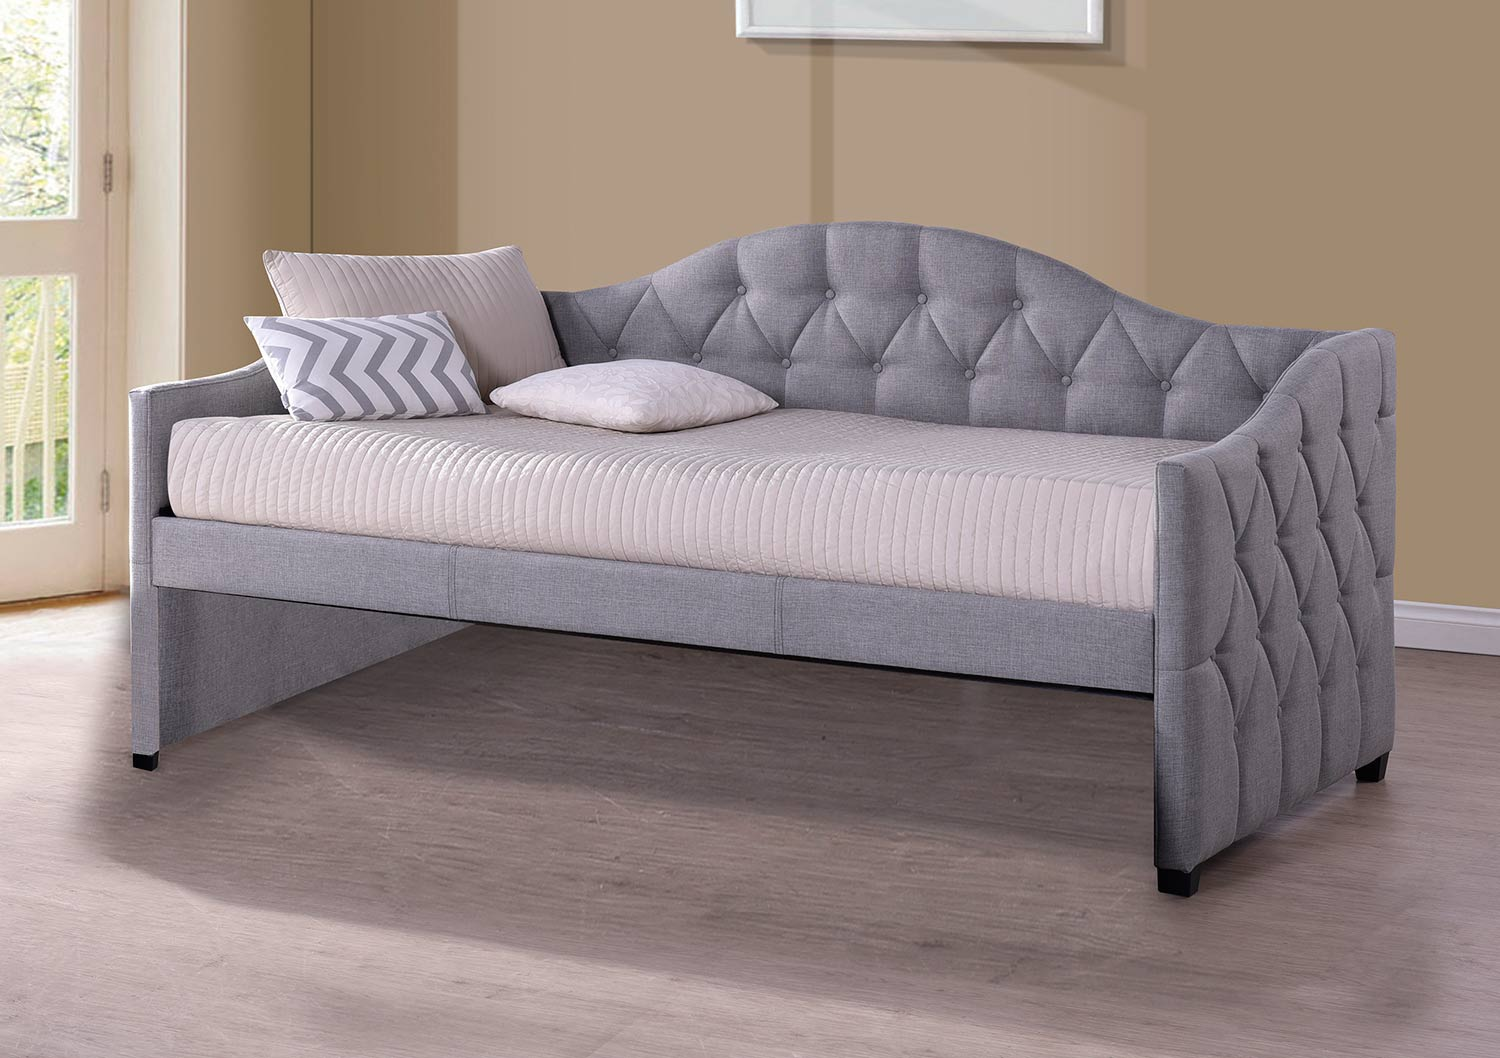 Hillsdale Jamie Daybed - Grey Fabric